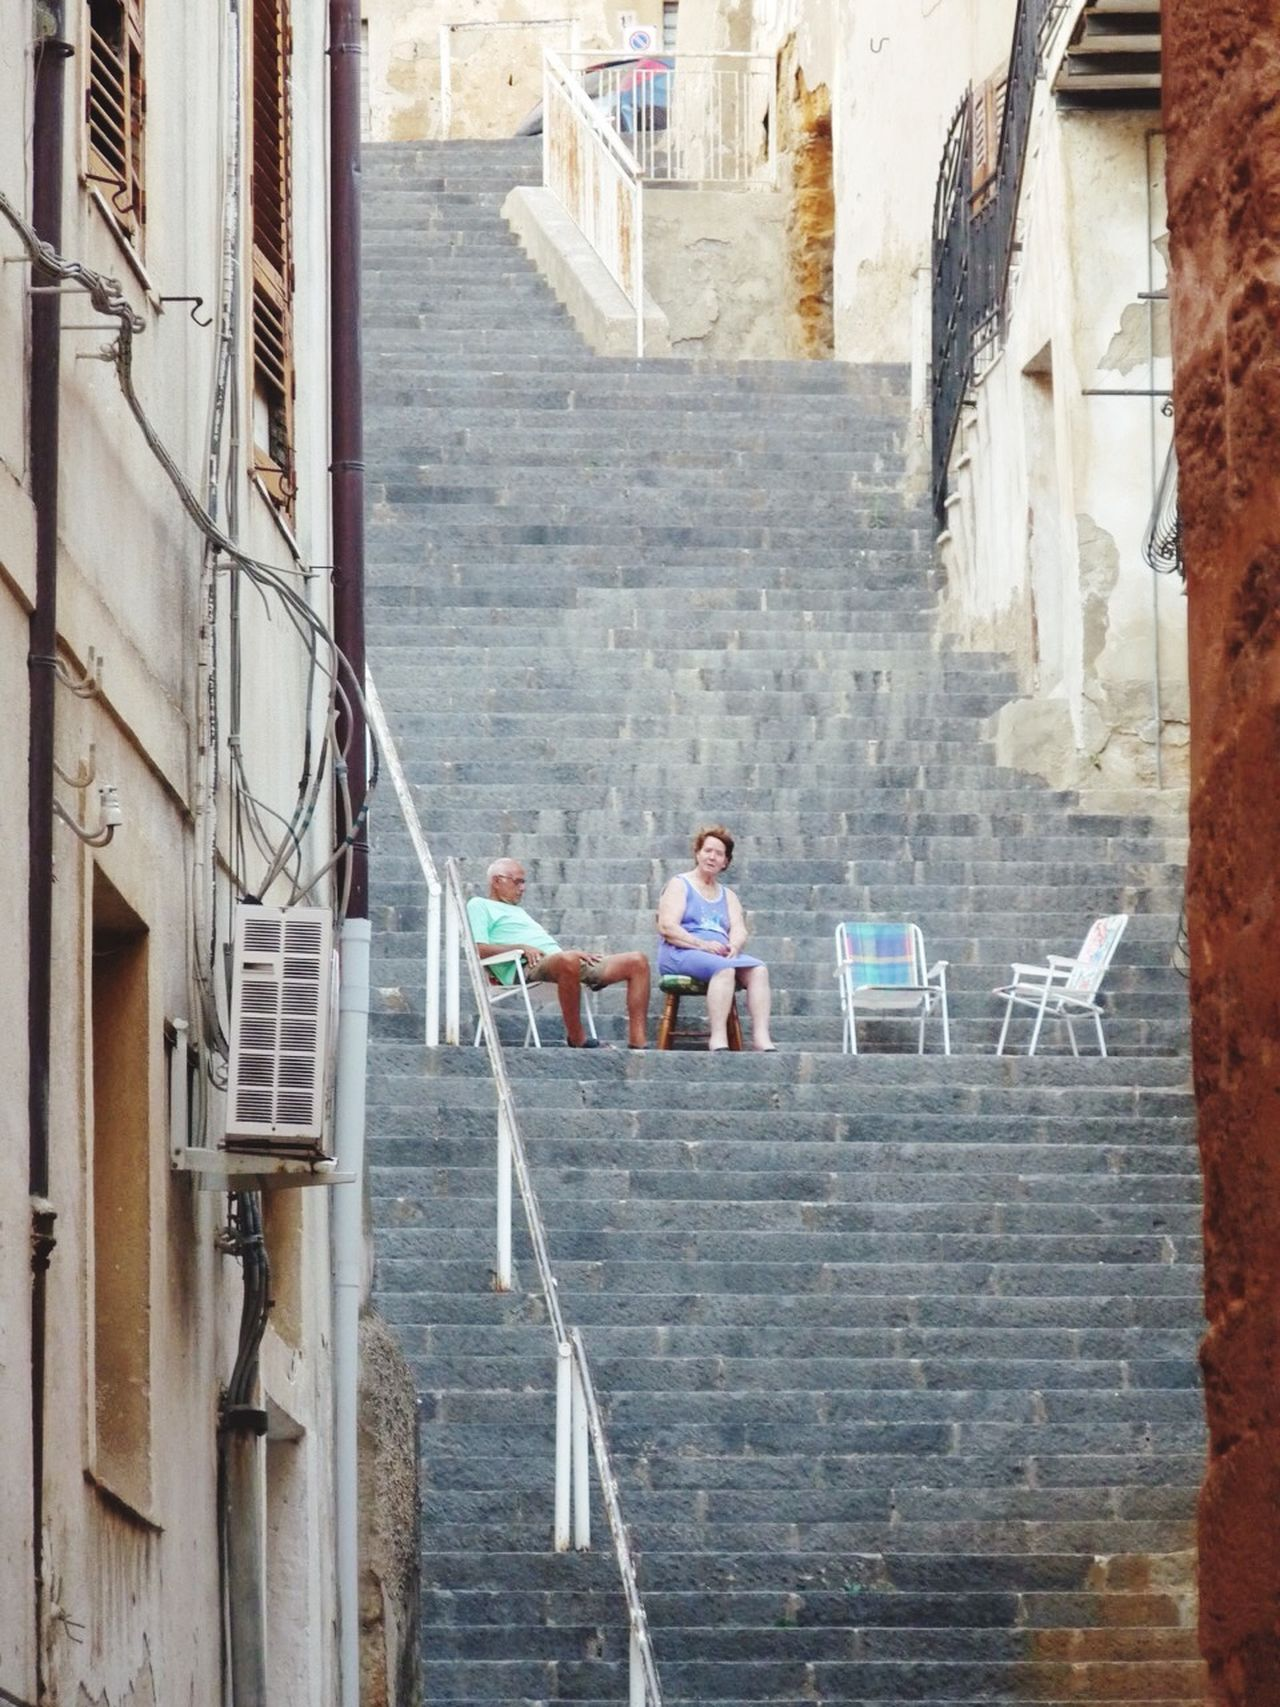 Happy monday ... Sicily Streetphotography Love In The Air